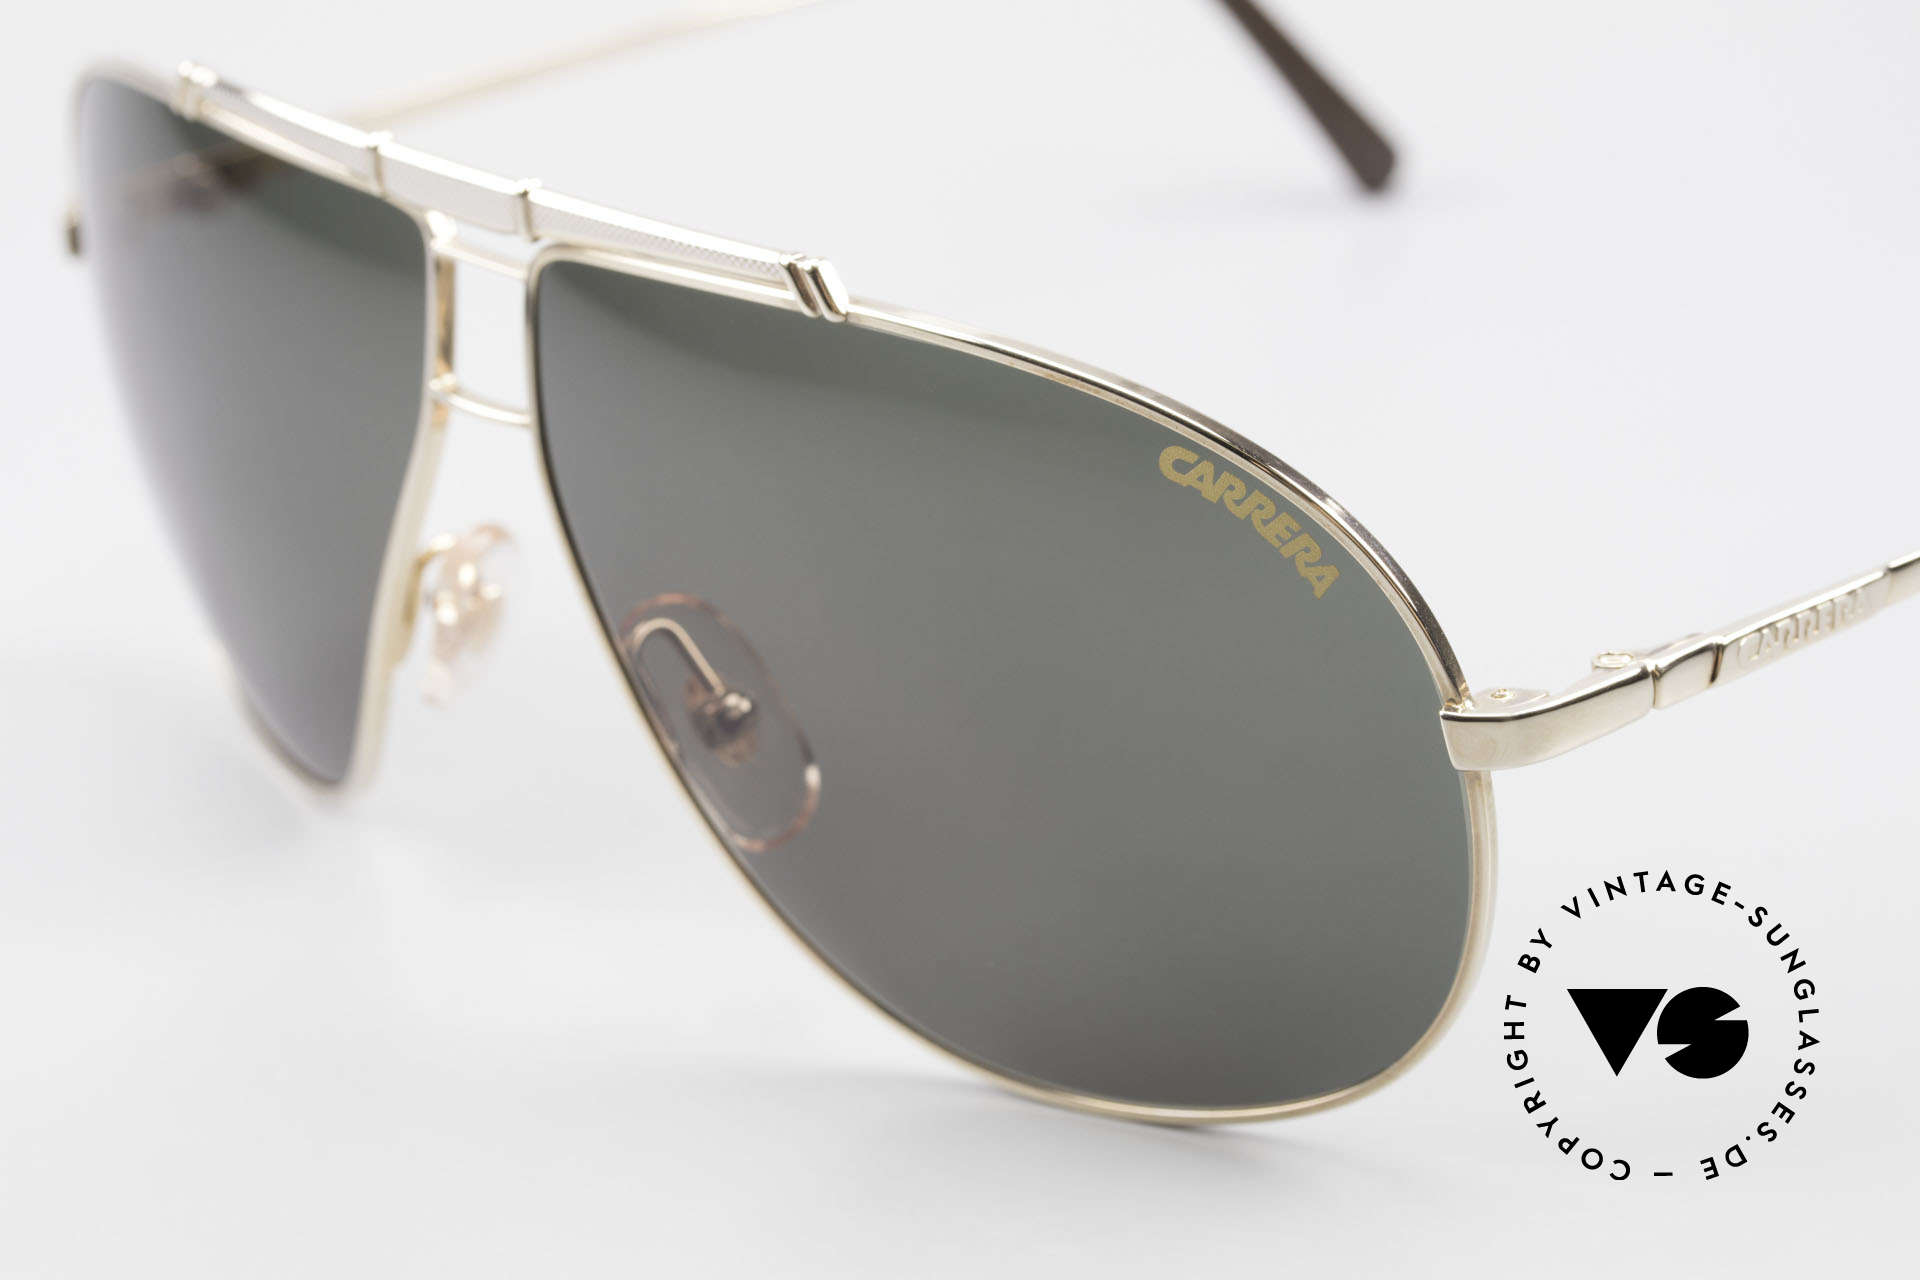 Carrera 5401 Large Aviator Shades Extra Lenses, vintage rarity comes with 1 pair replacement sun lenses, Made for Men